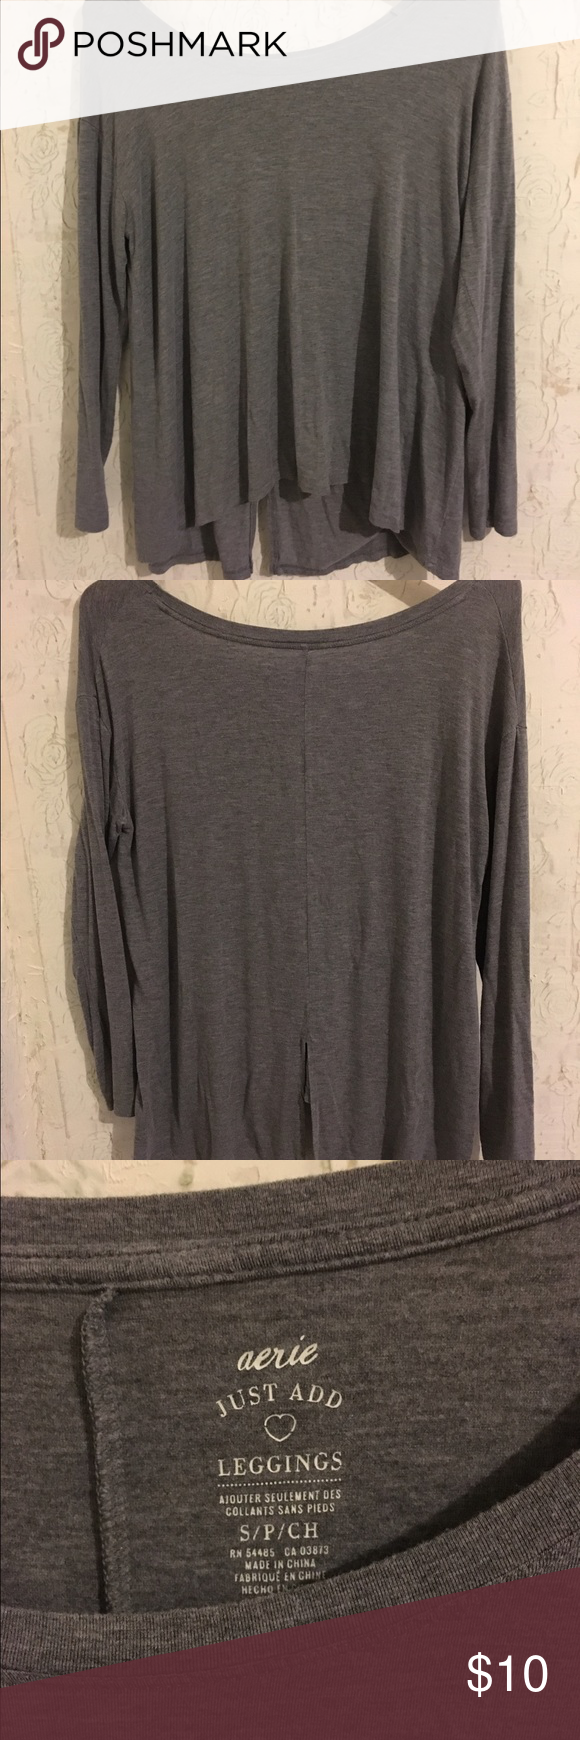 Size small American Eagle jogging tshirt Fits small-large, cute with leggings. Smoke free home. American Eagle Outfitters Tops Tees - Long Sleeve